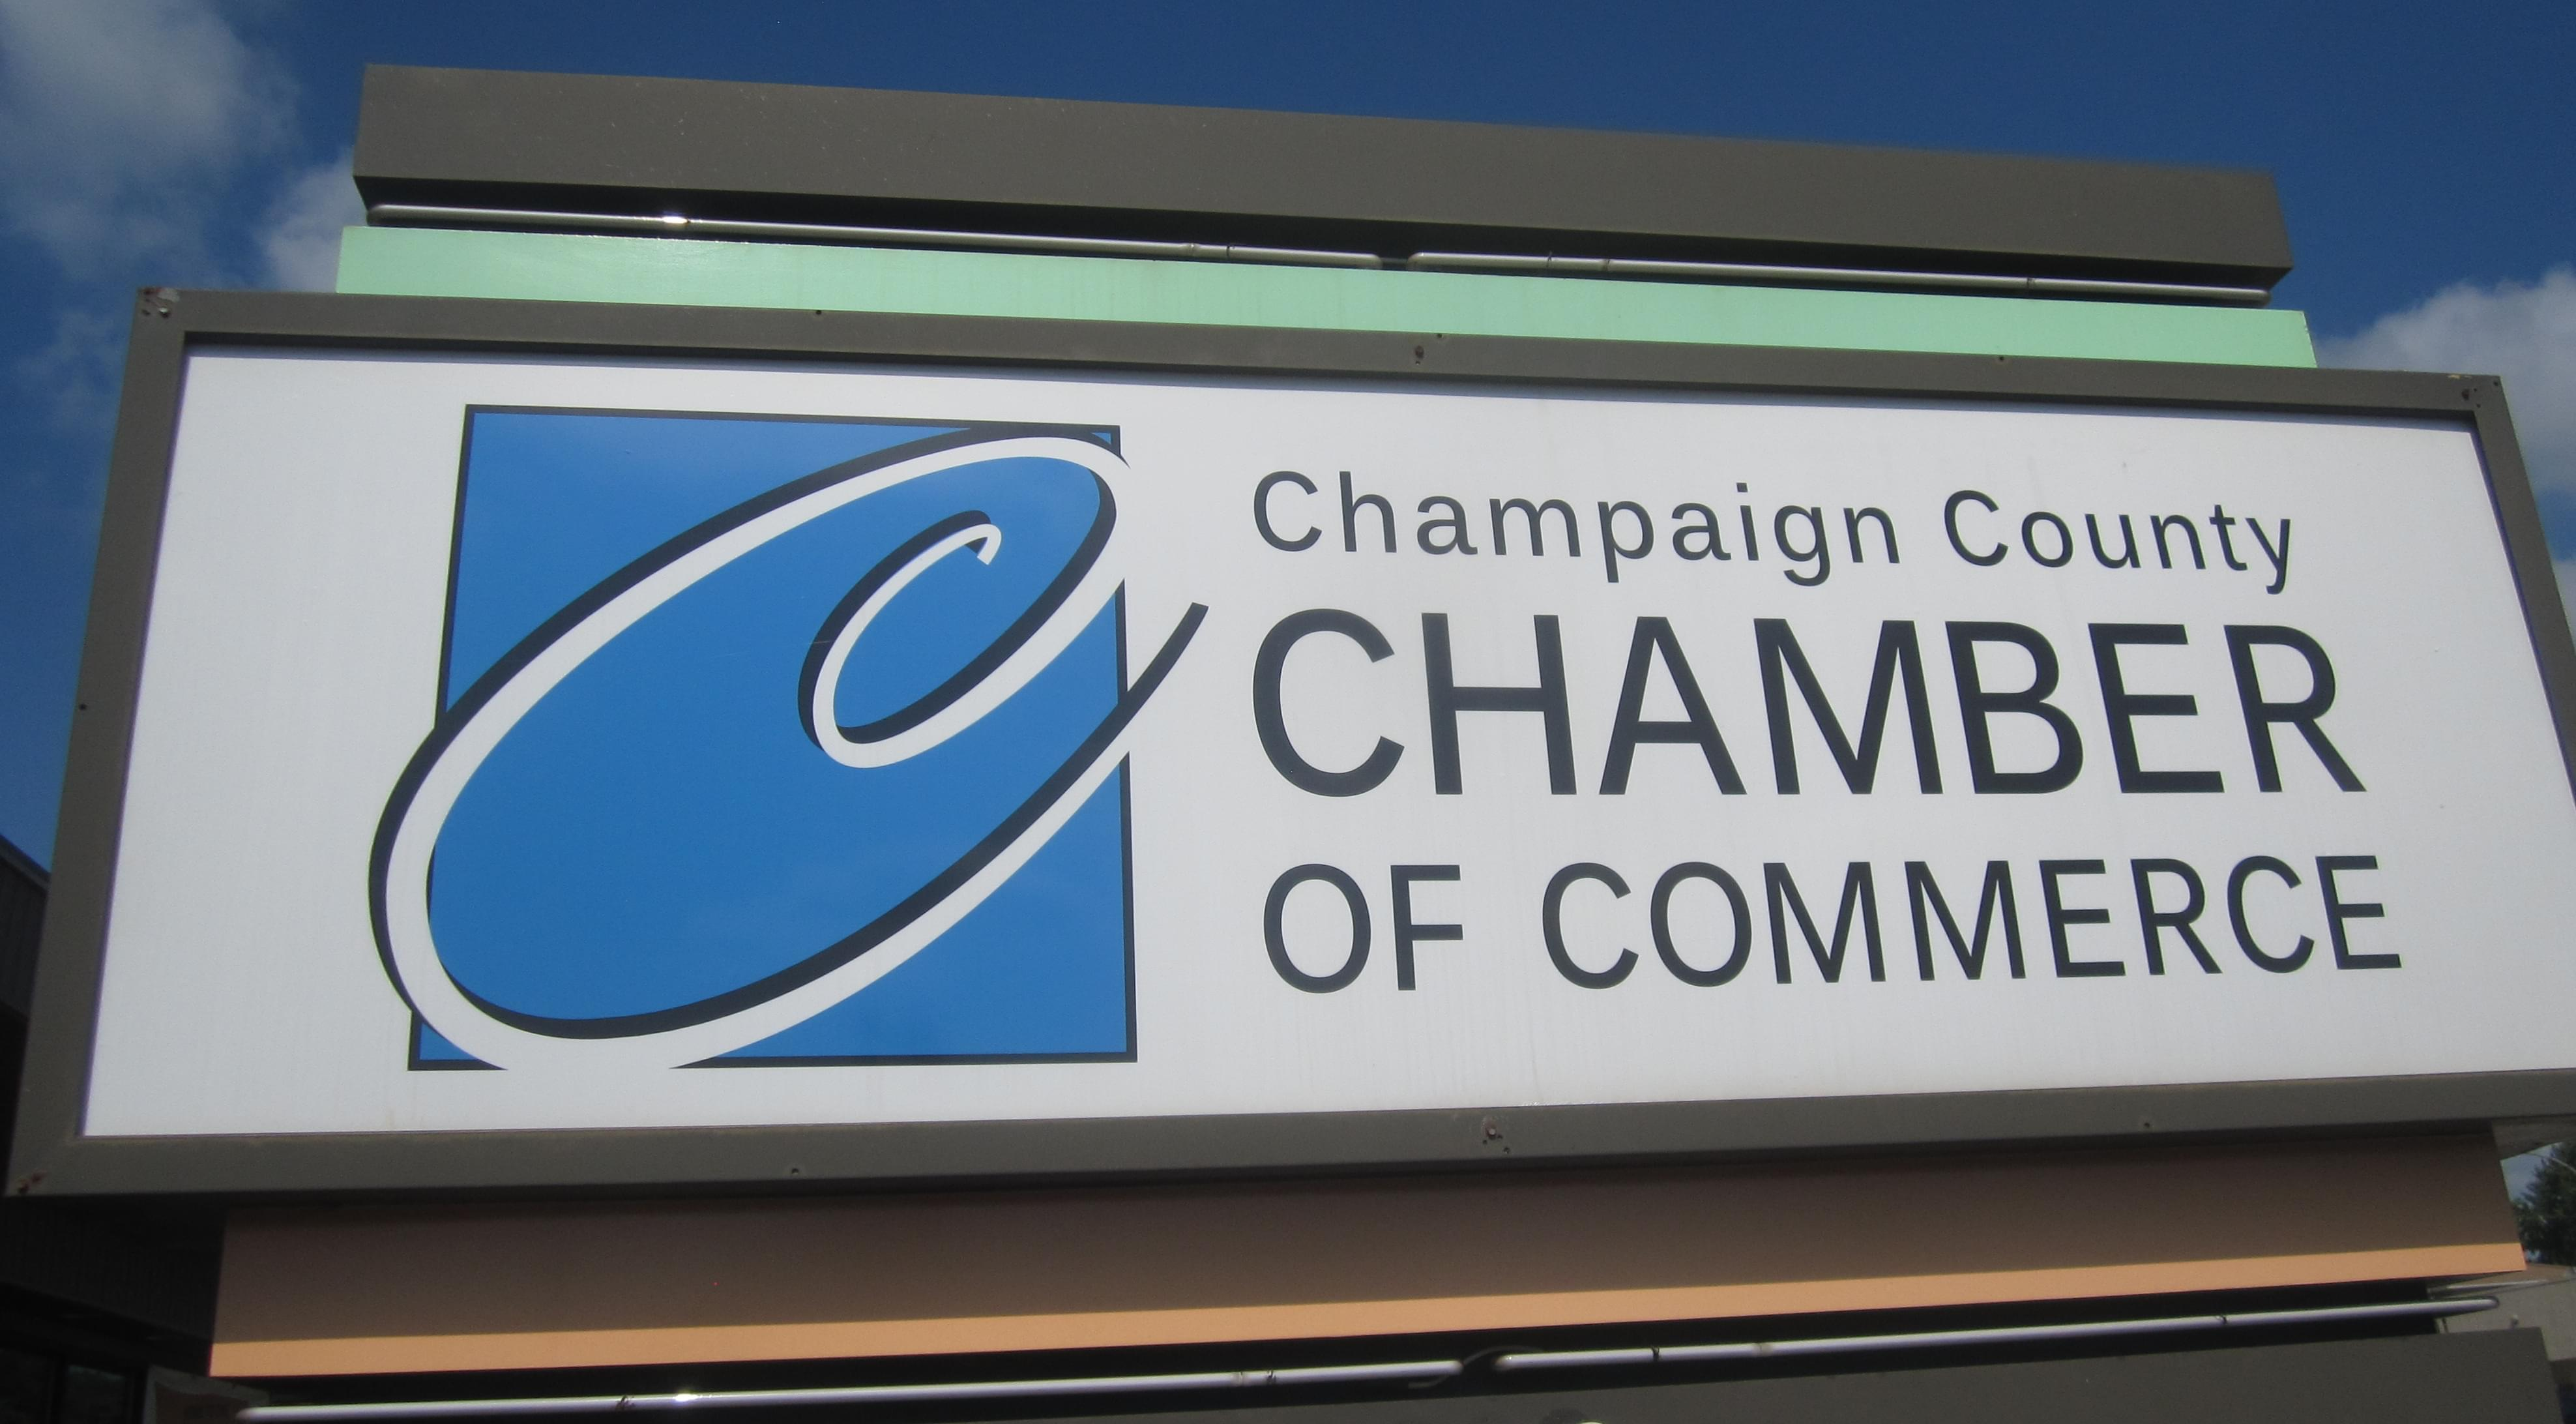 Sign for the Champaign County Chamber of Commerce.